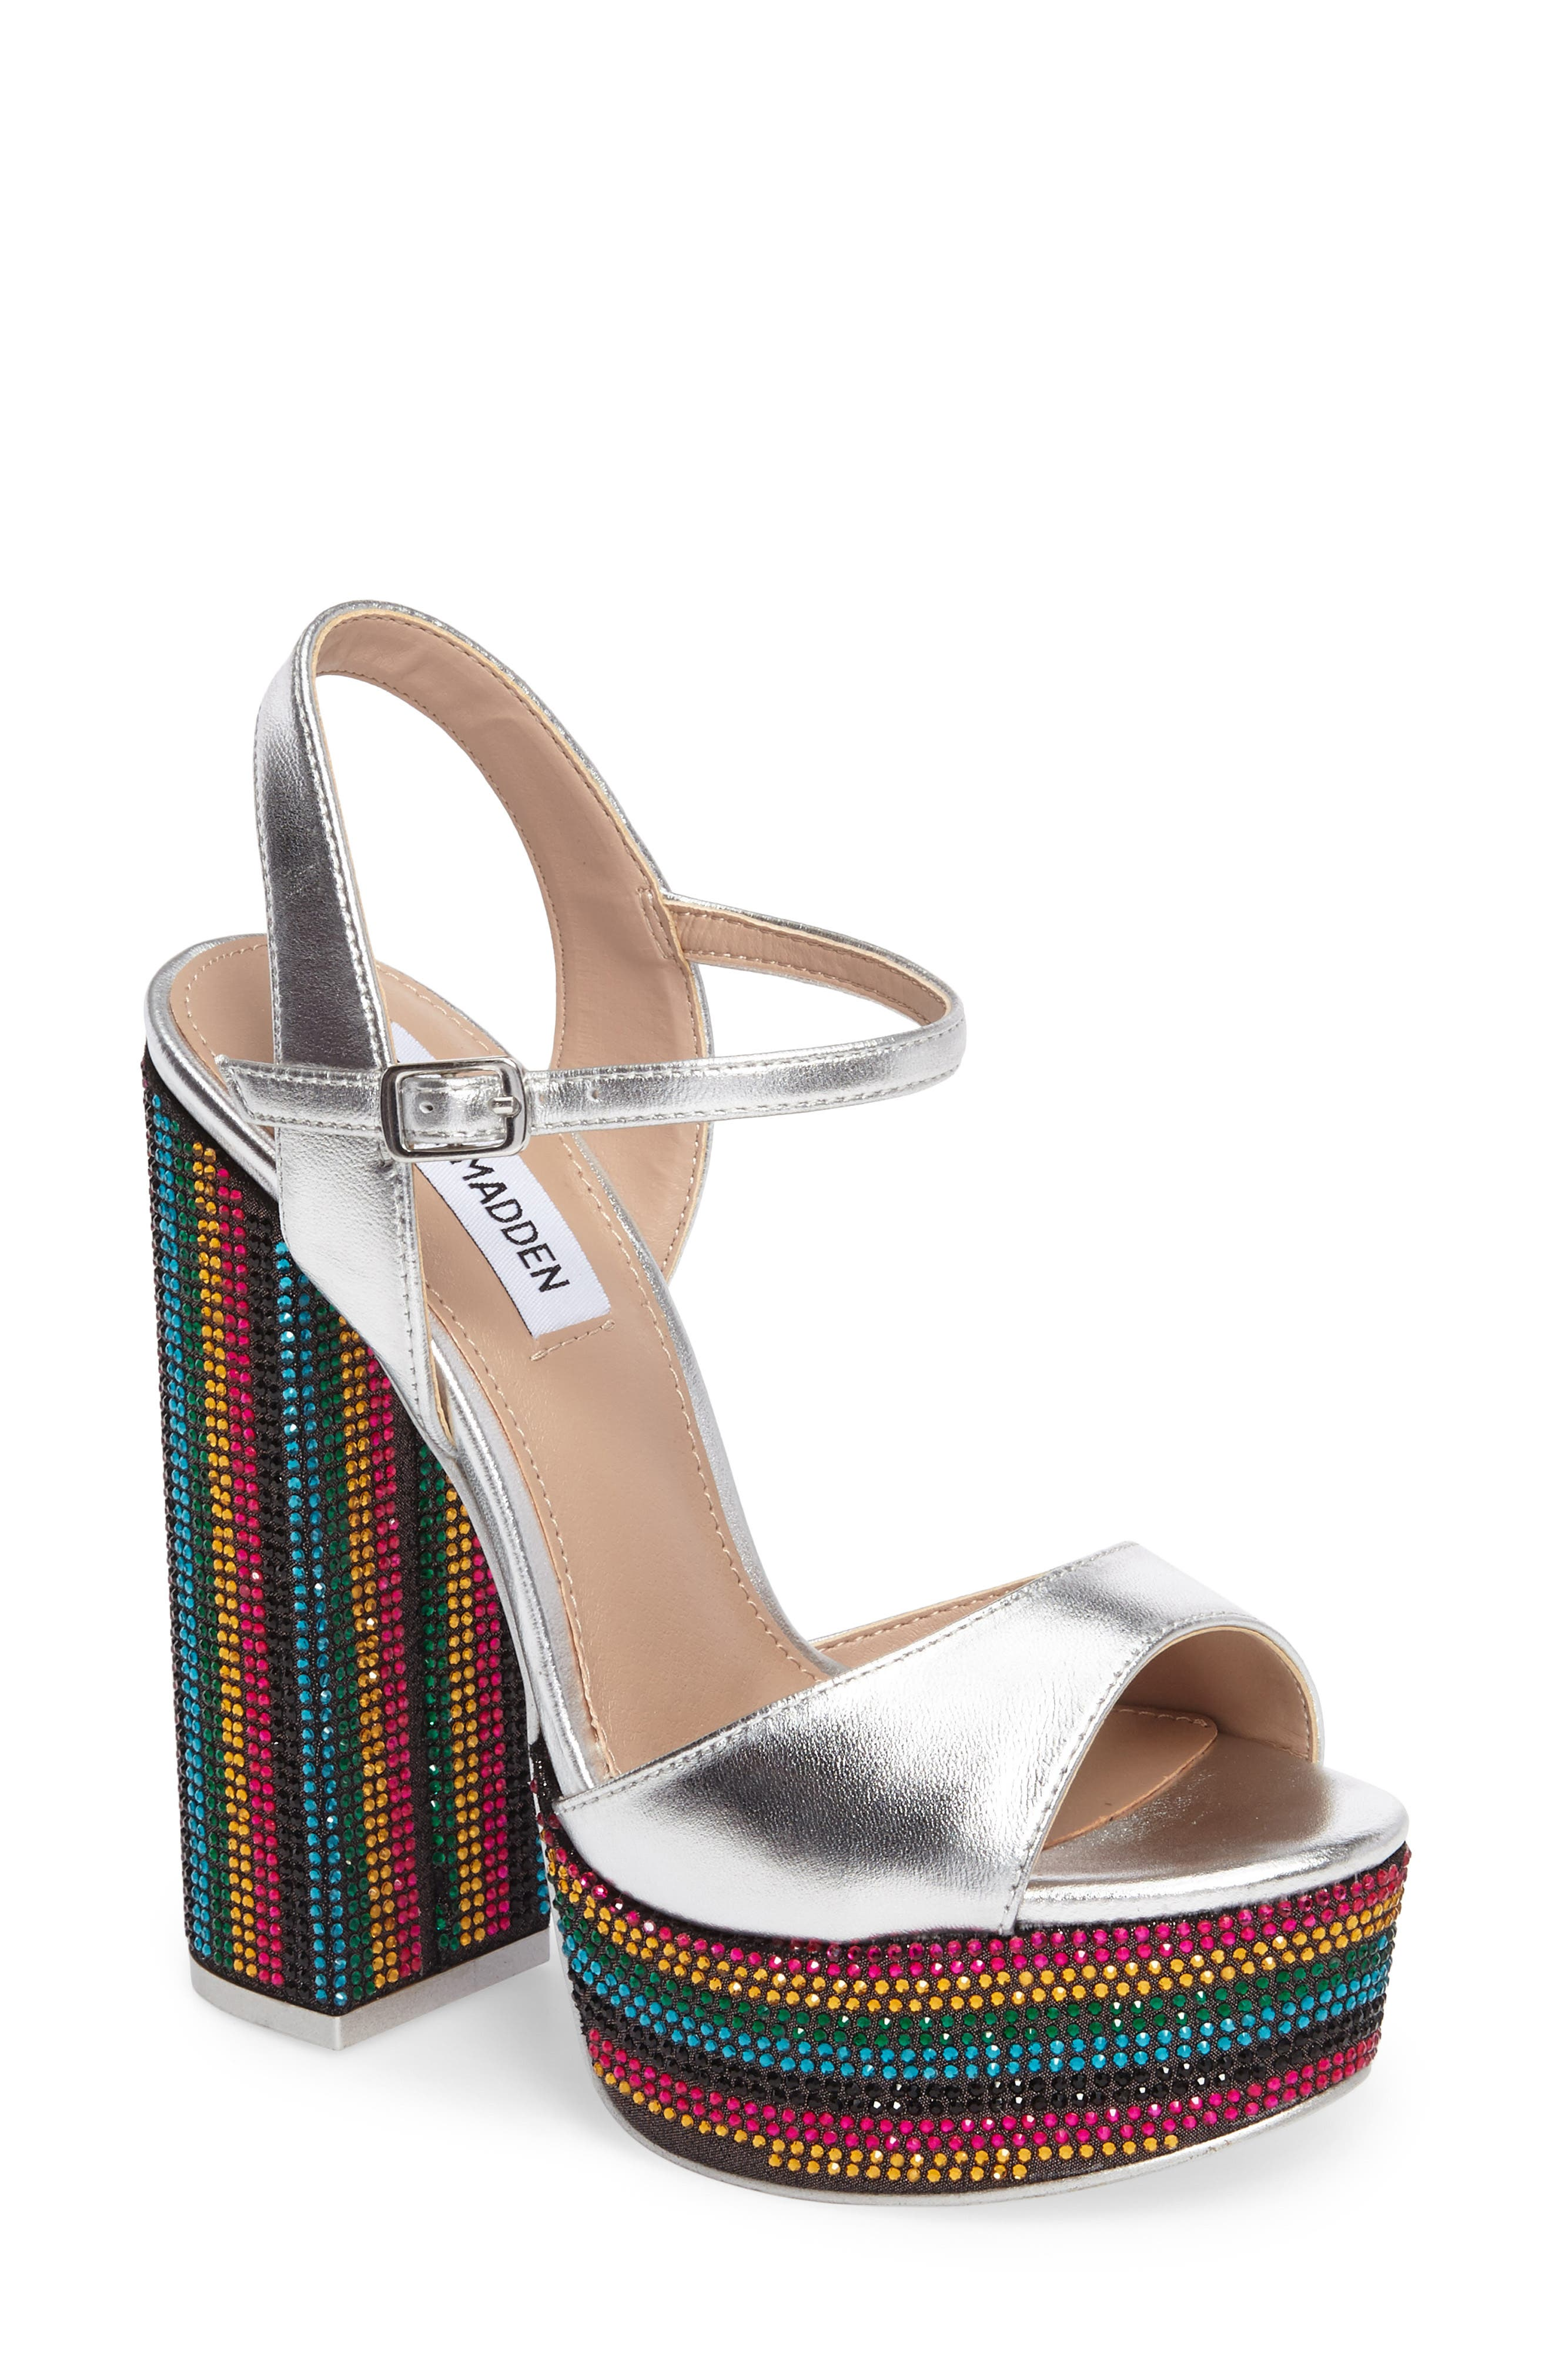 Alternate Image 1 Selected - Steve Madden Piera Sandal (Women)